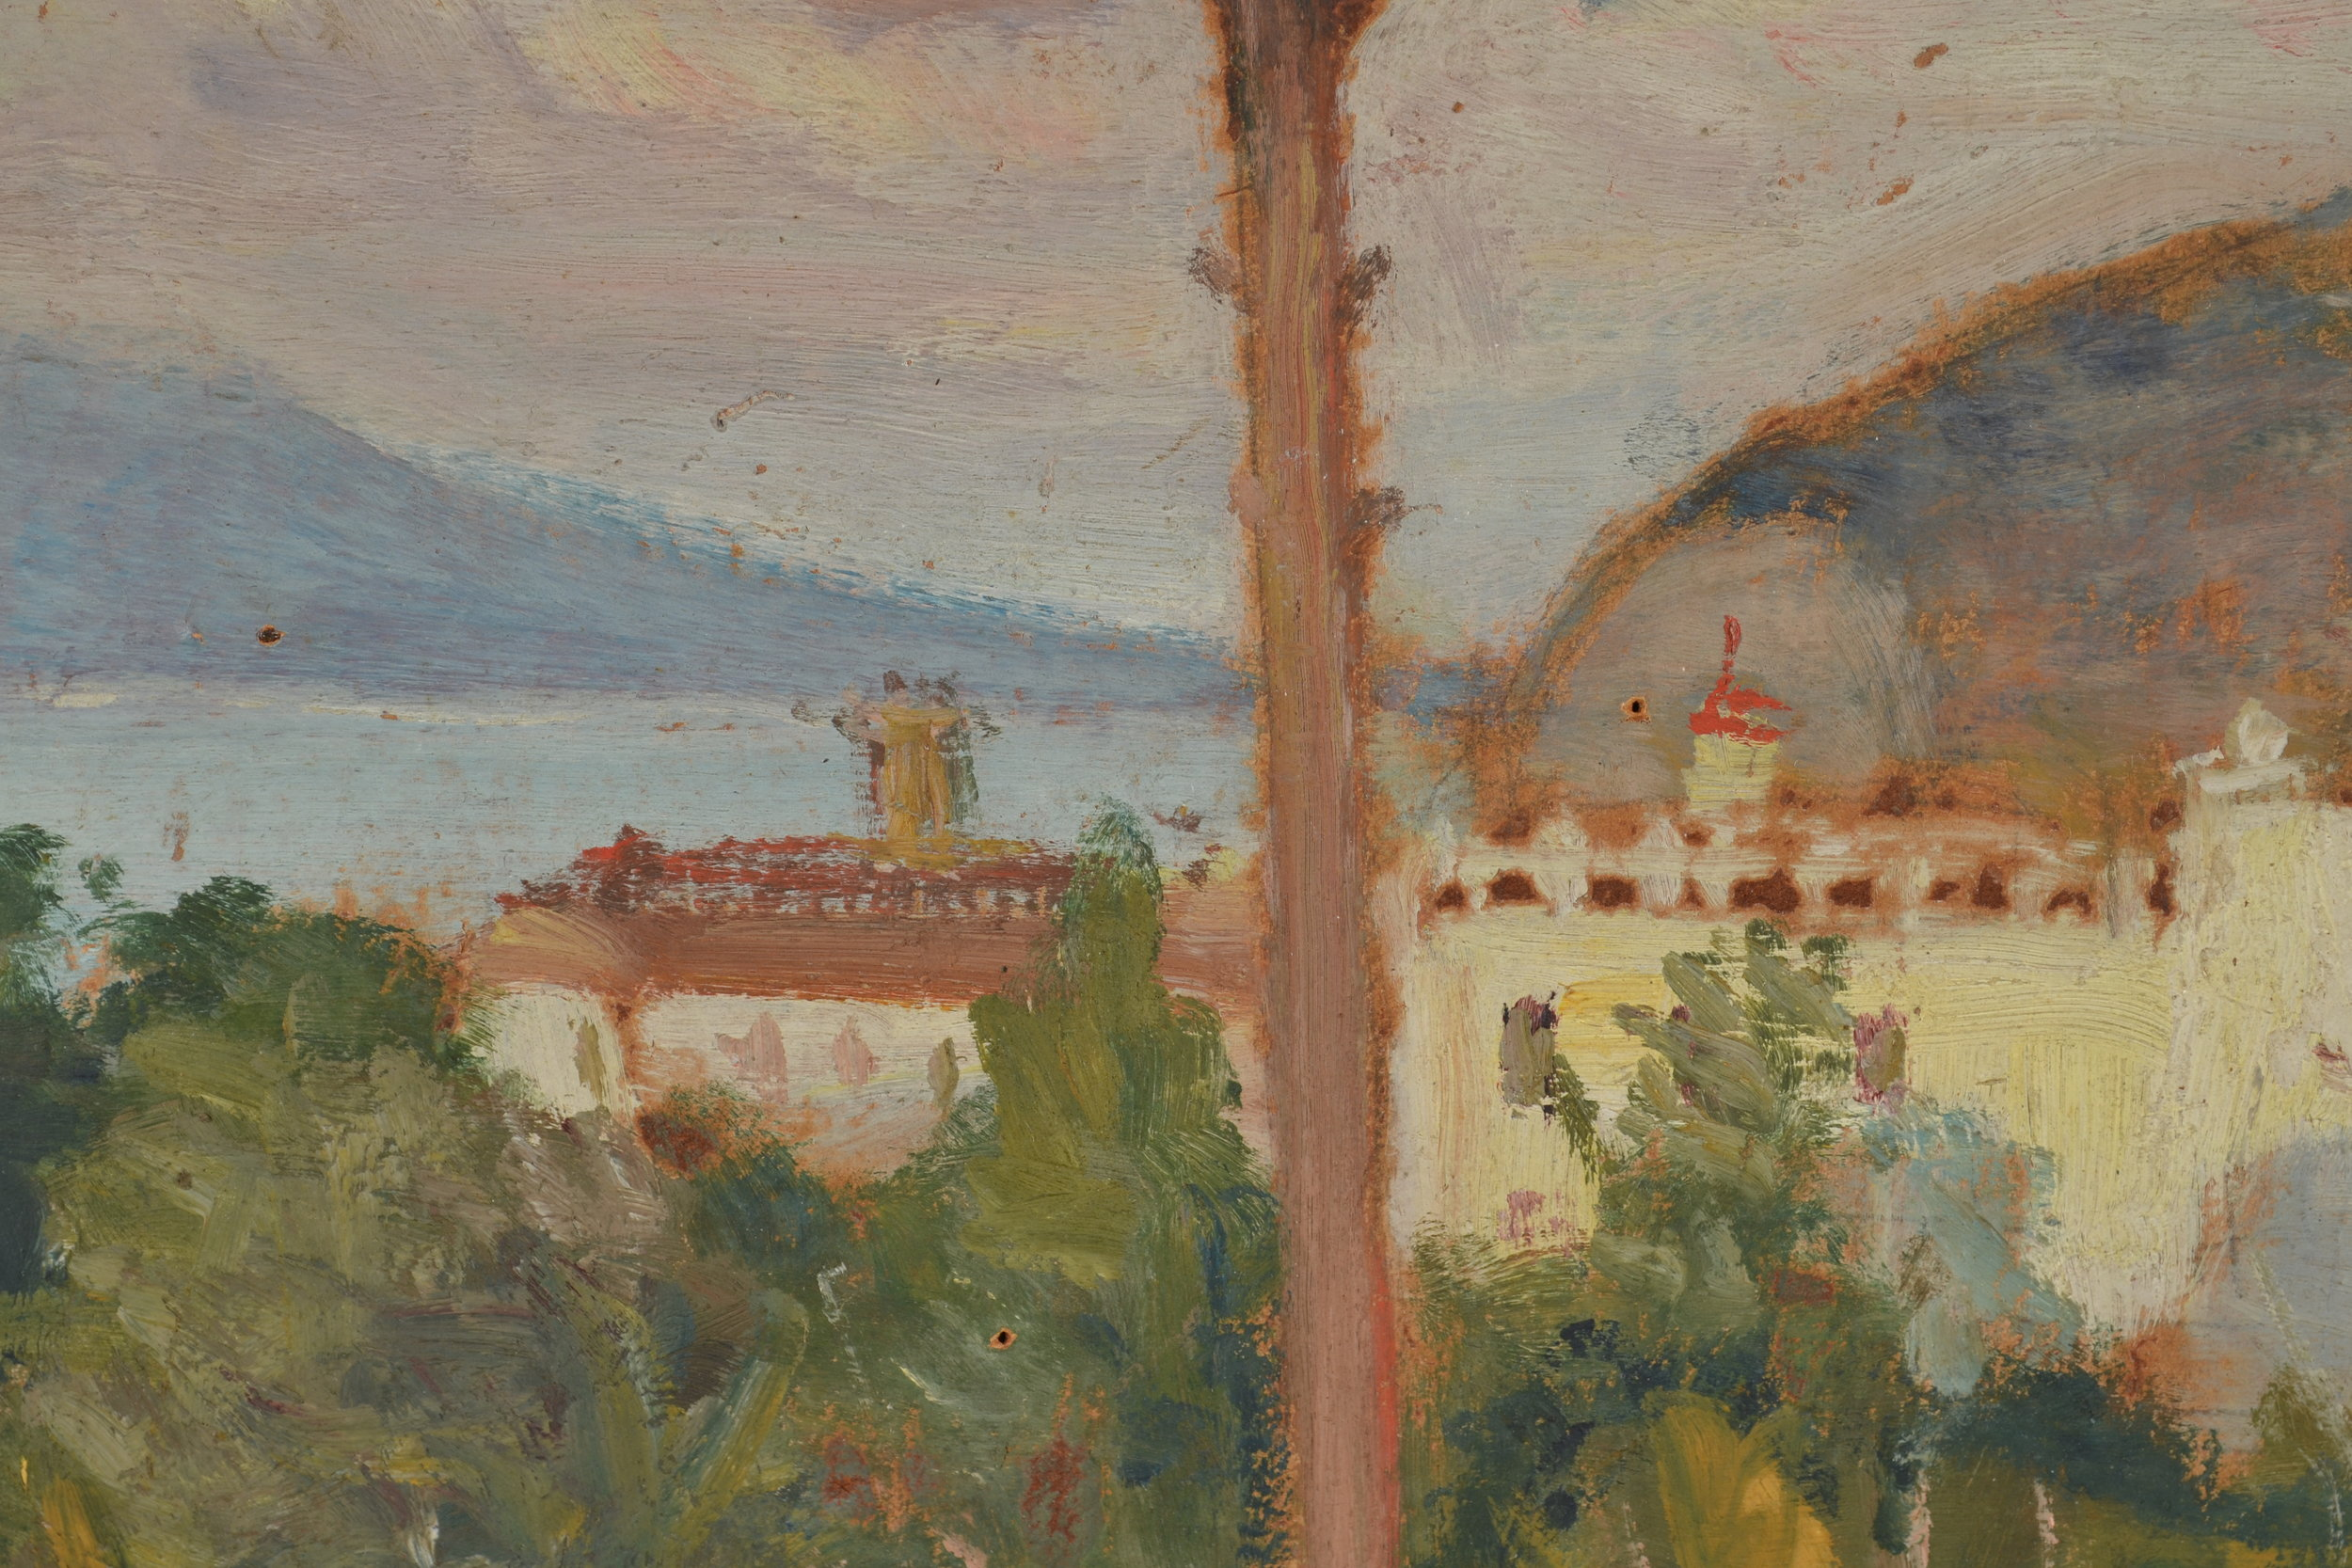 Detail image of one of the  Sorrento  paintings by Grant Wood.